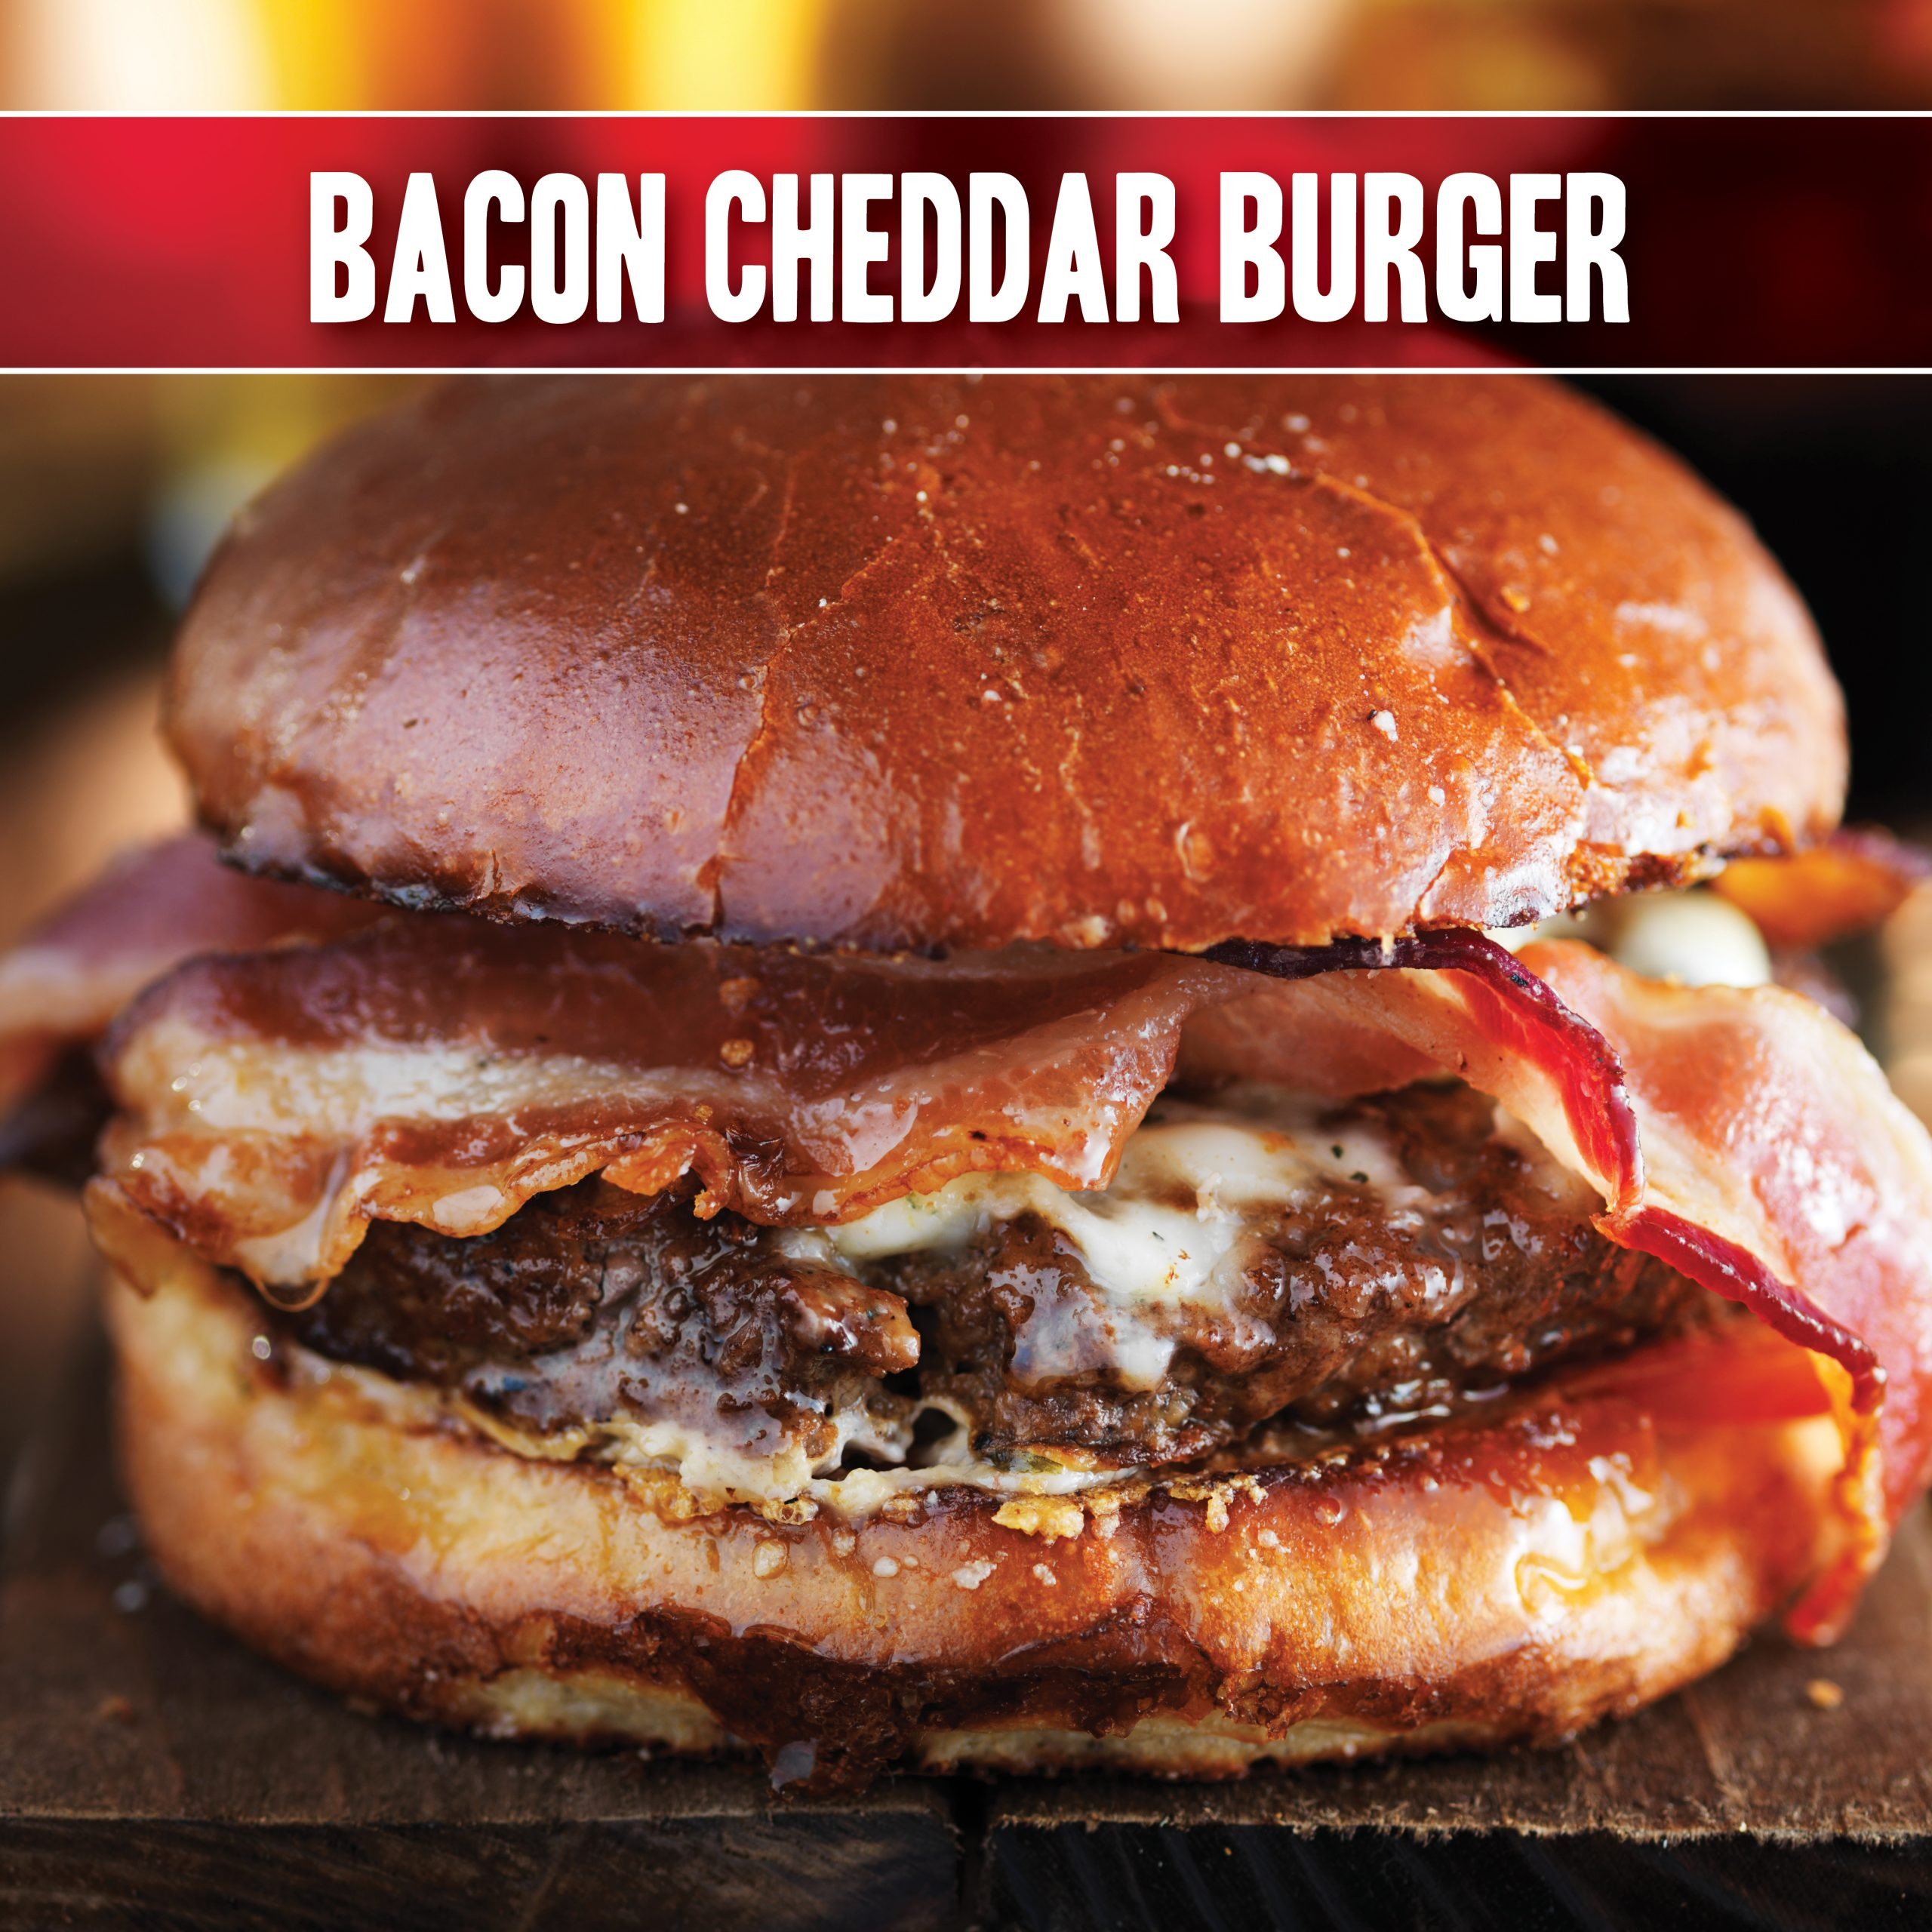 Bacon Cheddar Burger